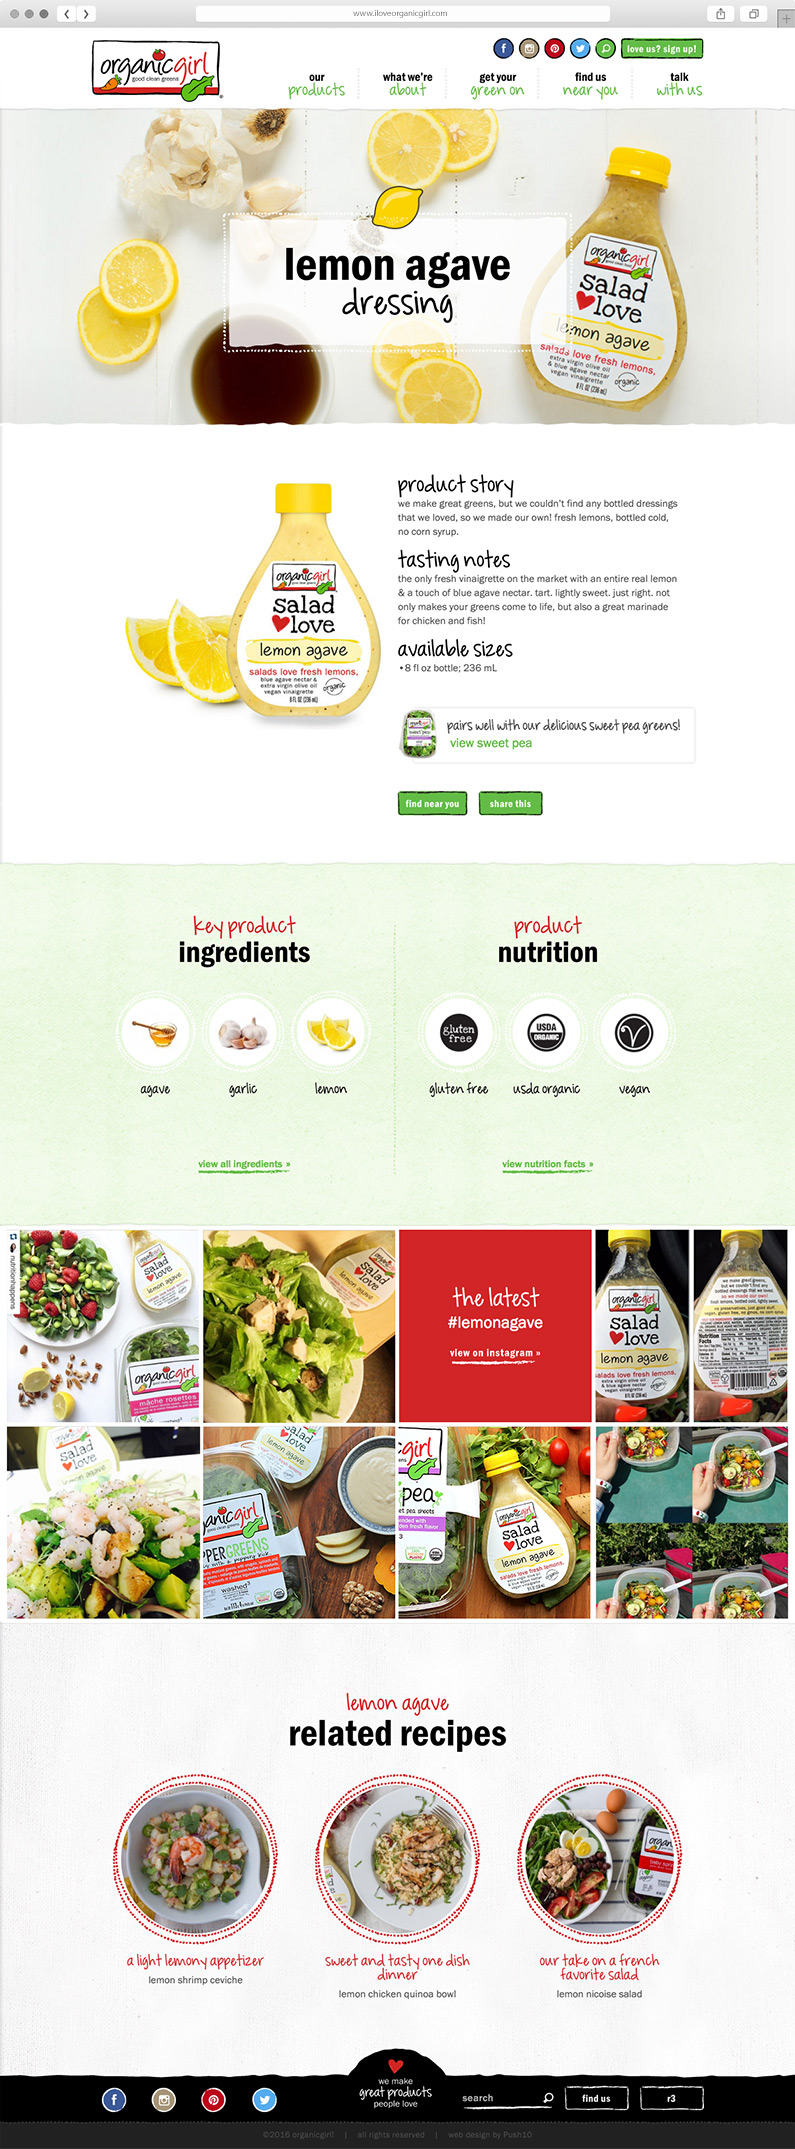 Website User Interface Design for Organicgirl in California, Package Design for California Organic Food Processing Company, Organicgirl, organicgirl site, push10, natural food web deisgn, organic food website, branding, web development, custom photography, natural food website